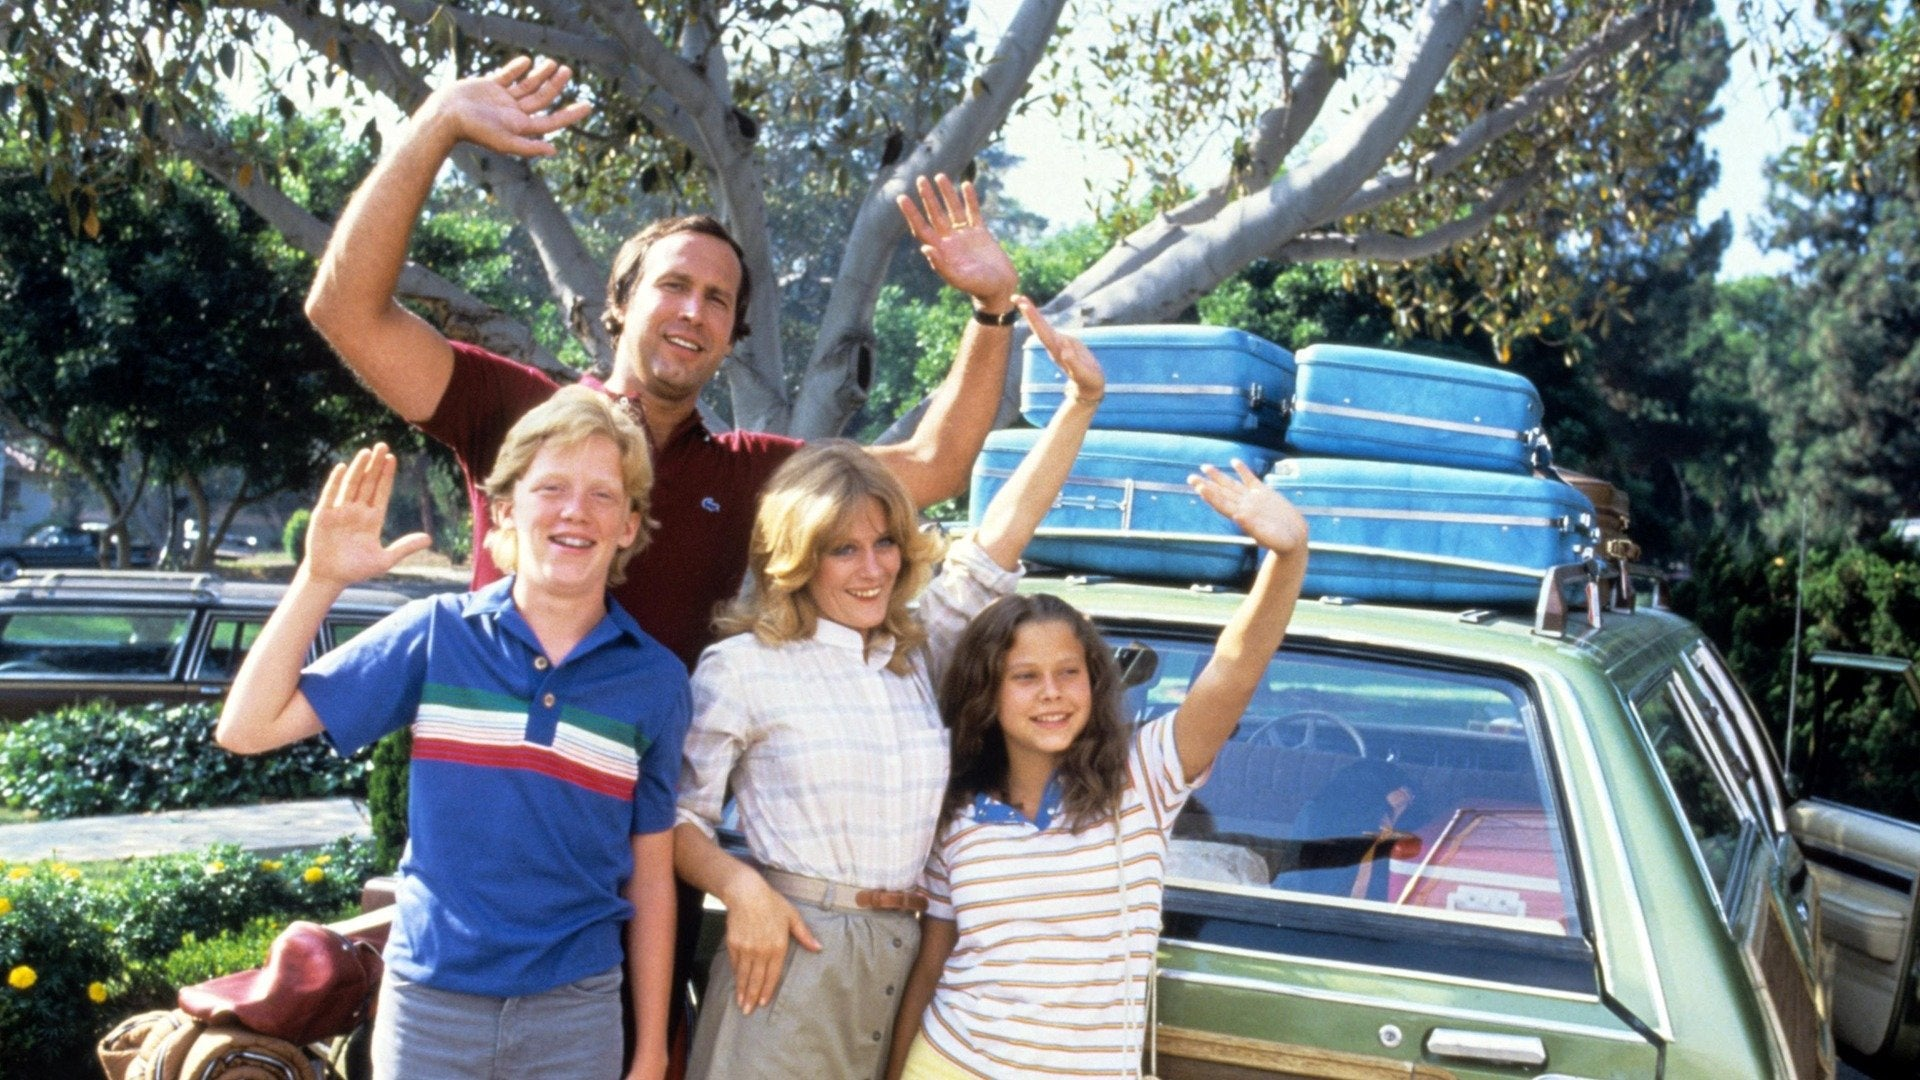 National Lampoon's Vacation: The Inside Story